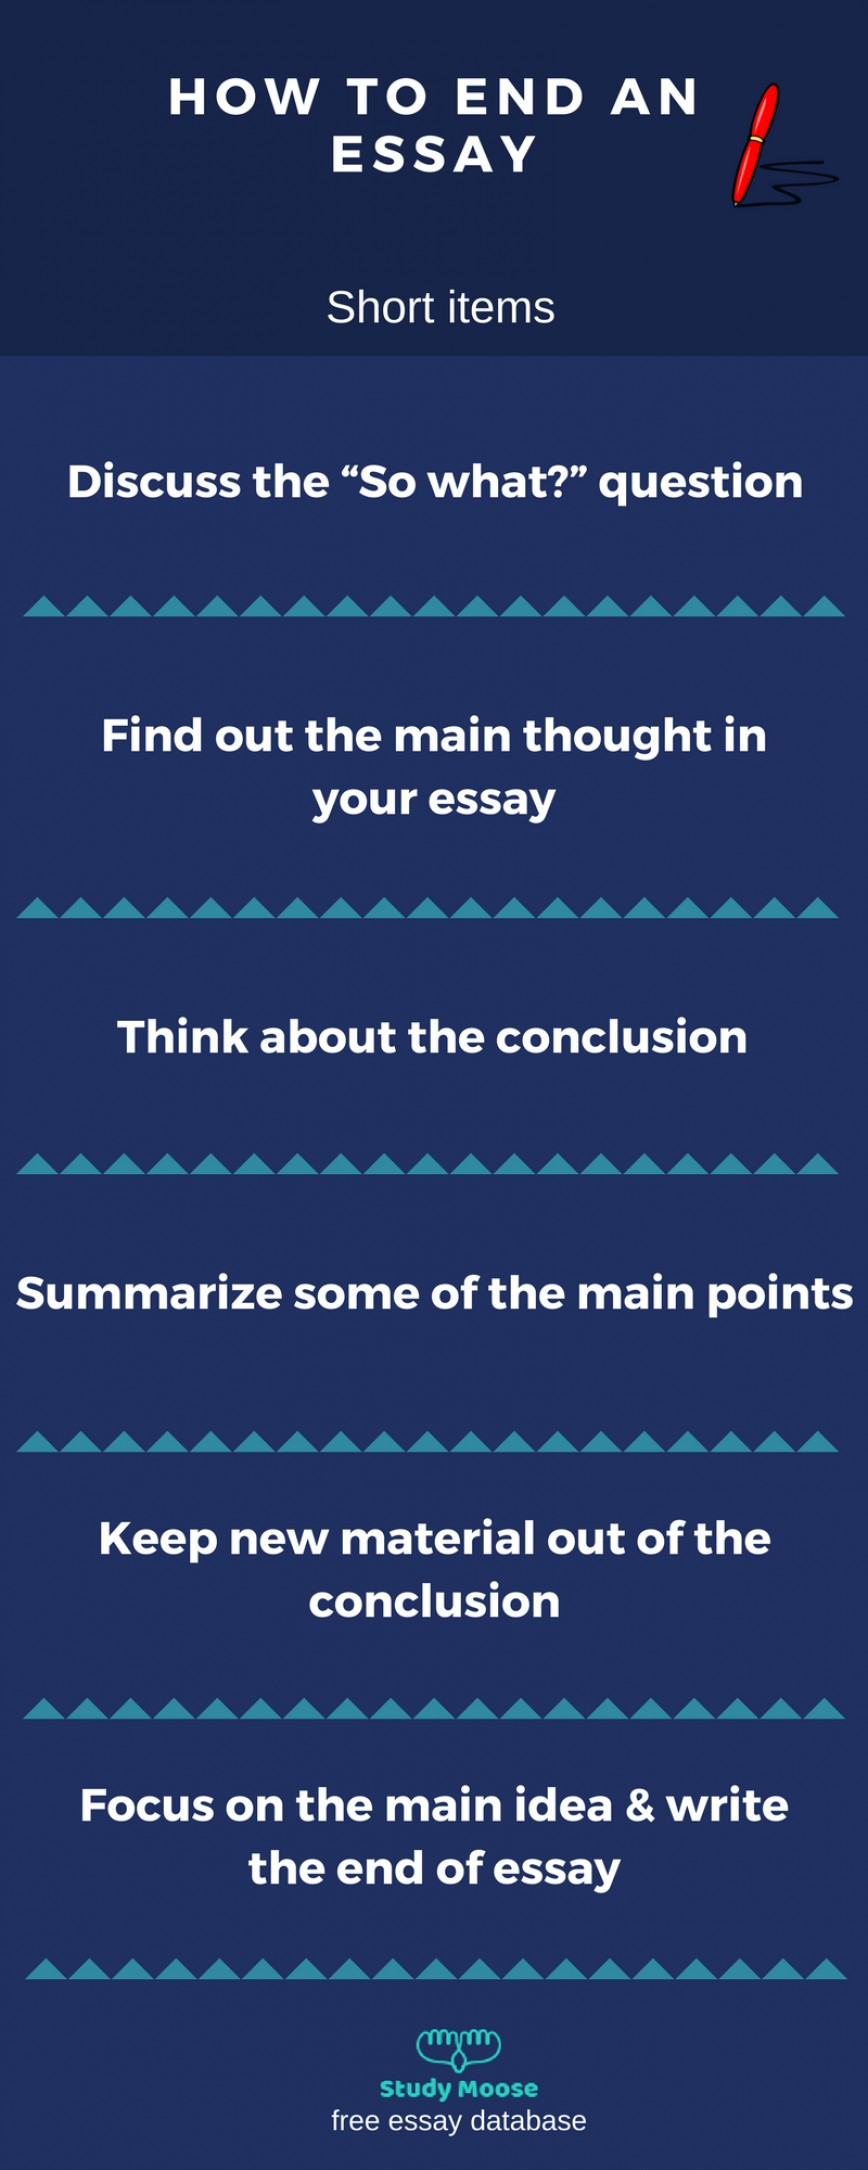 003 Essay Example Good Ways To End An Outstanding Opinion Best Way Argumentative What Are Some 868